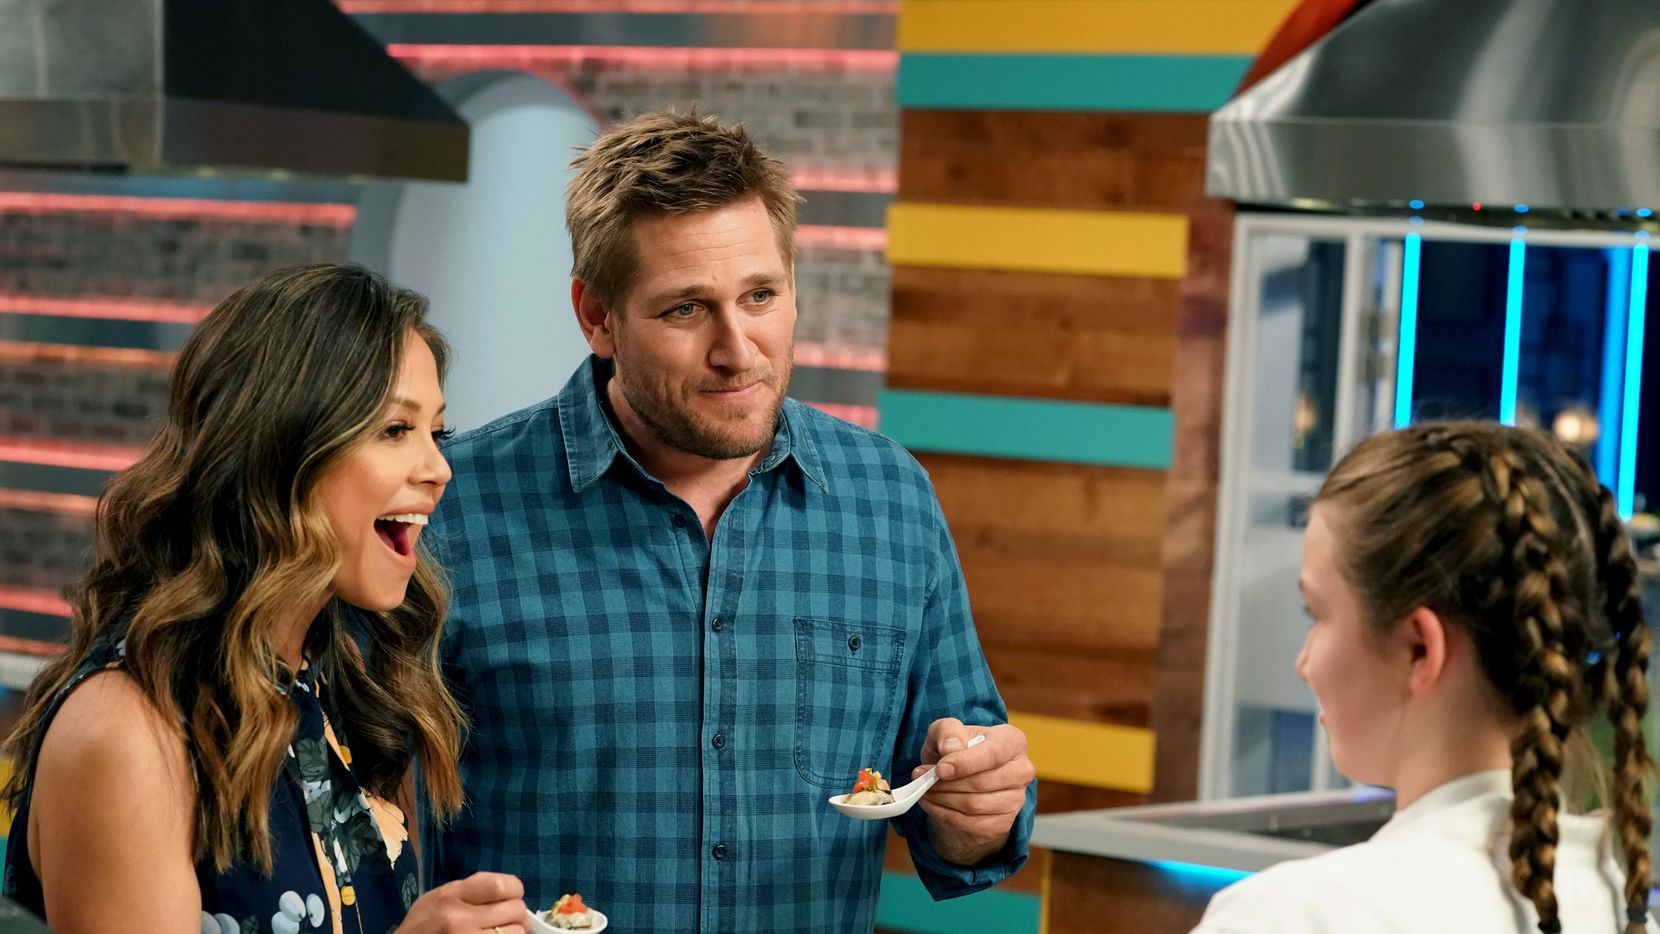 Curtis Stone, center, a celebrity TV personality and chef, will open a restaurant in Dallas inspired by his glammy West Hollywood restaurant Gwen.